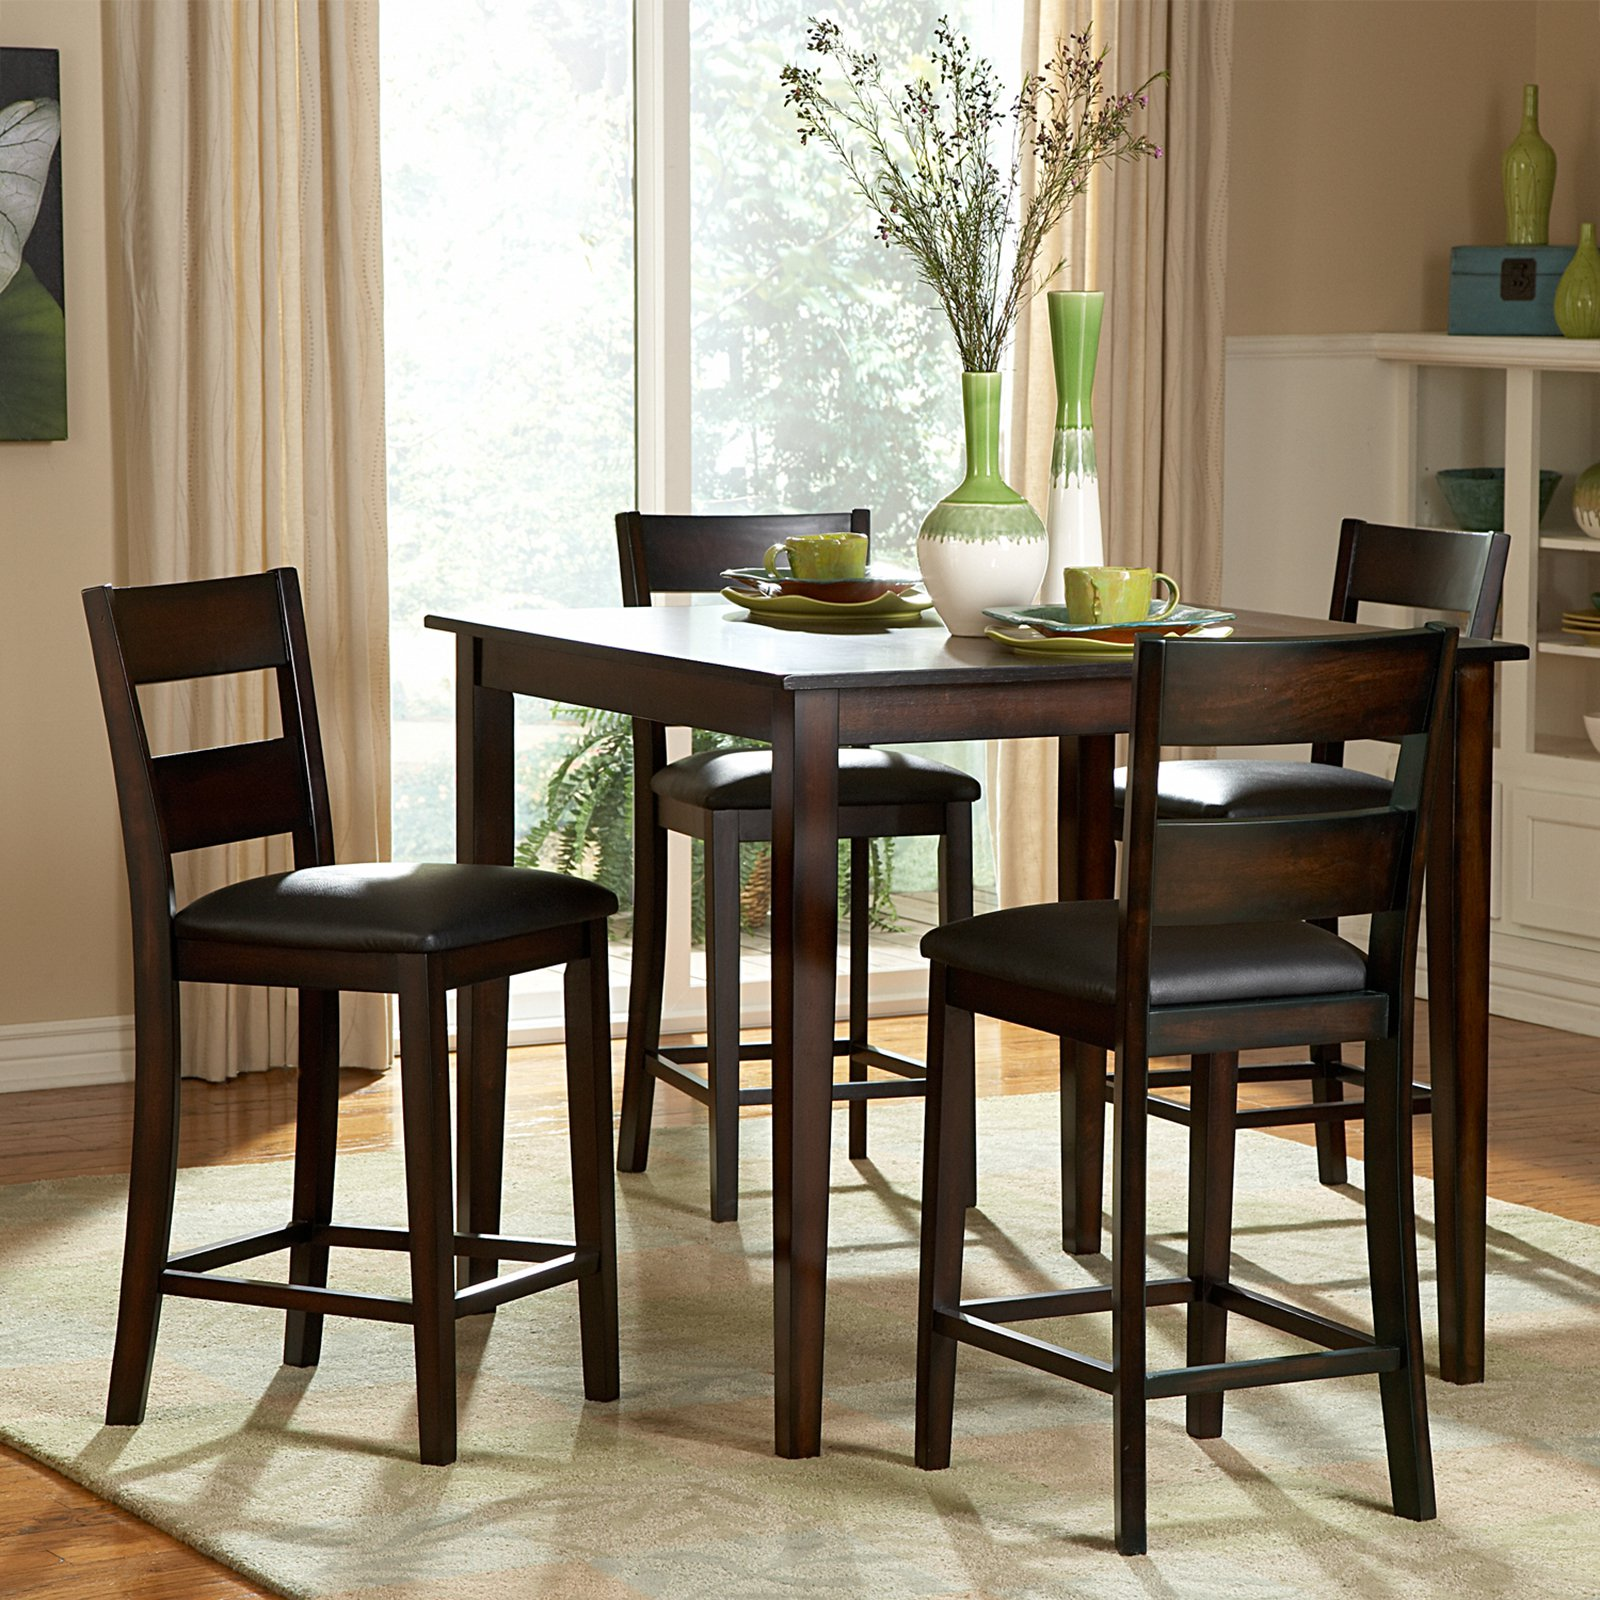 homelegance griffin 5-piece counter height dining table set